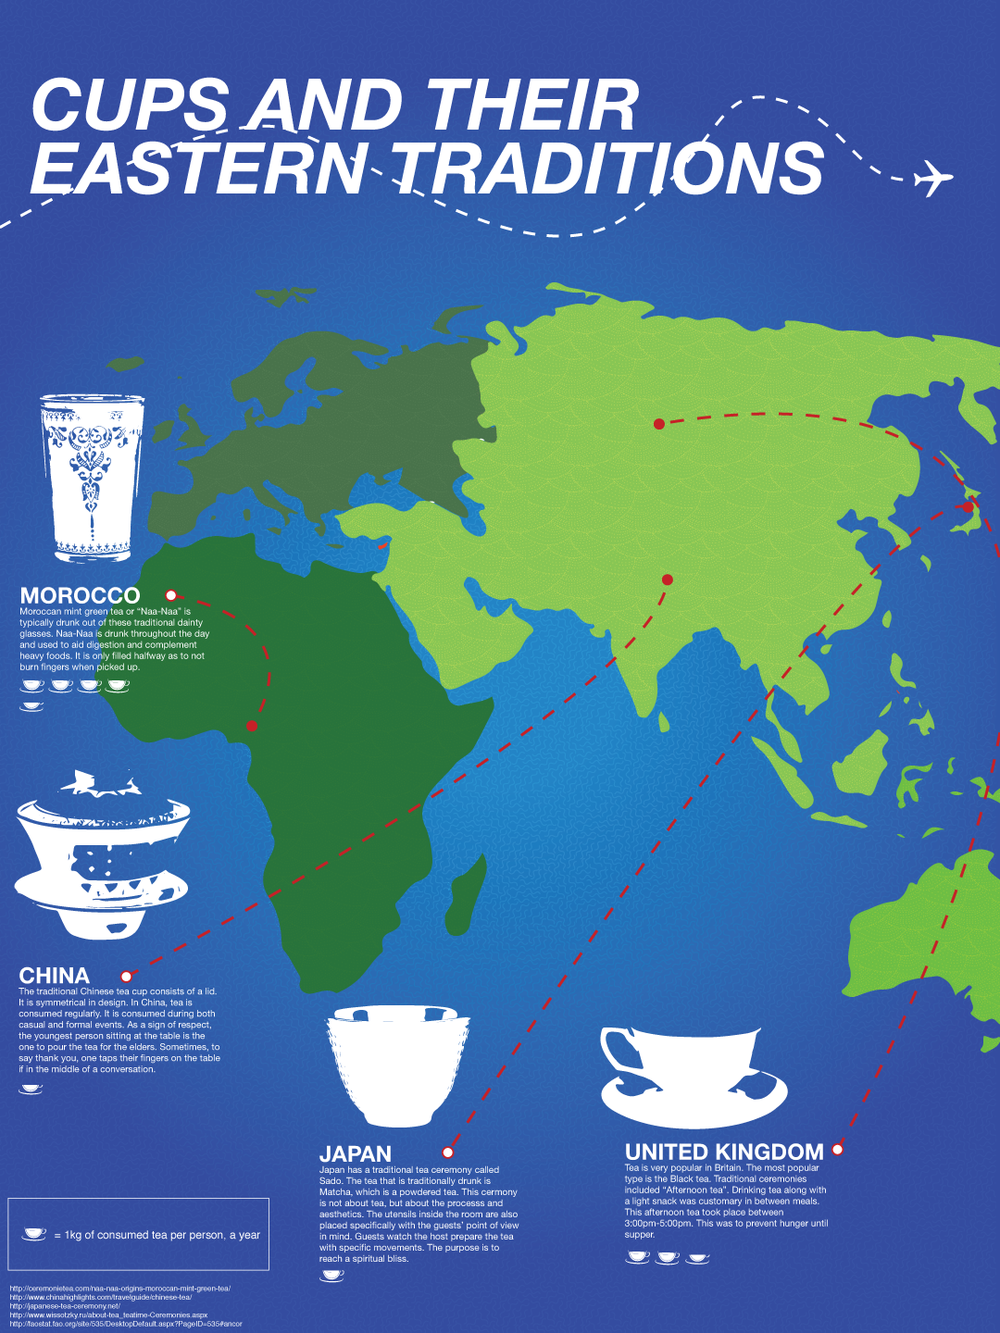 Cups & Their Eastern Traditions